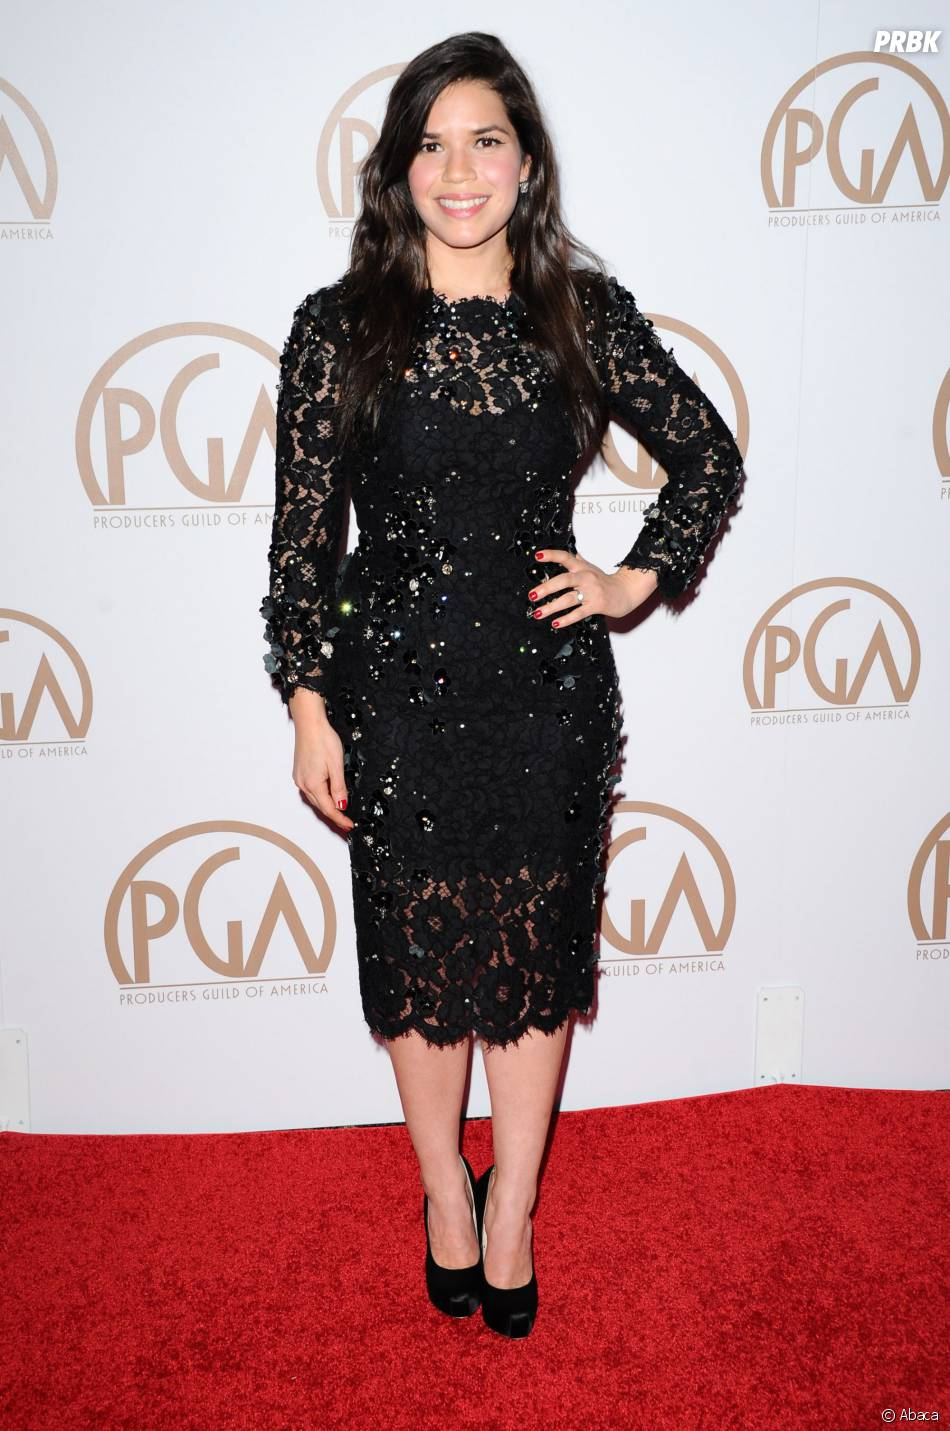 America Ferrera aux Producers Guilds Awards 2015